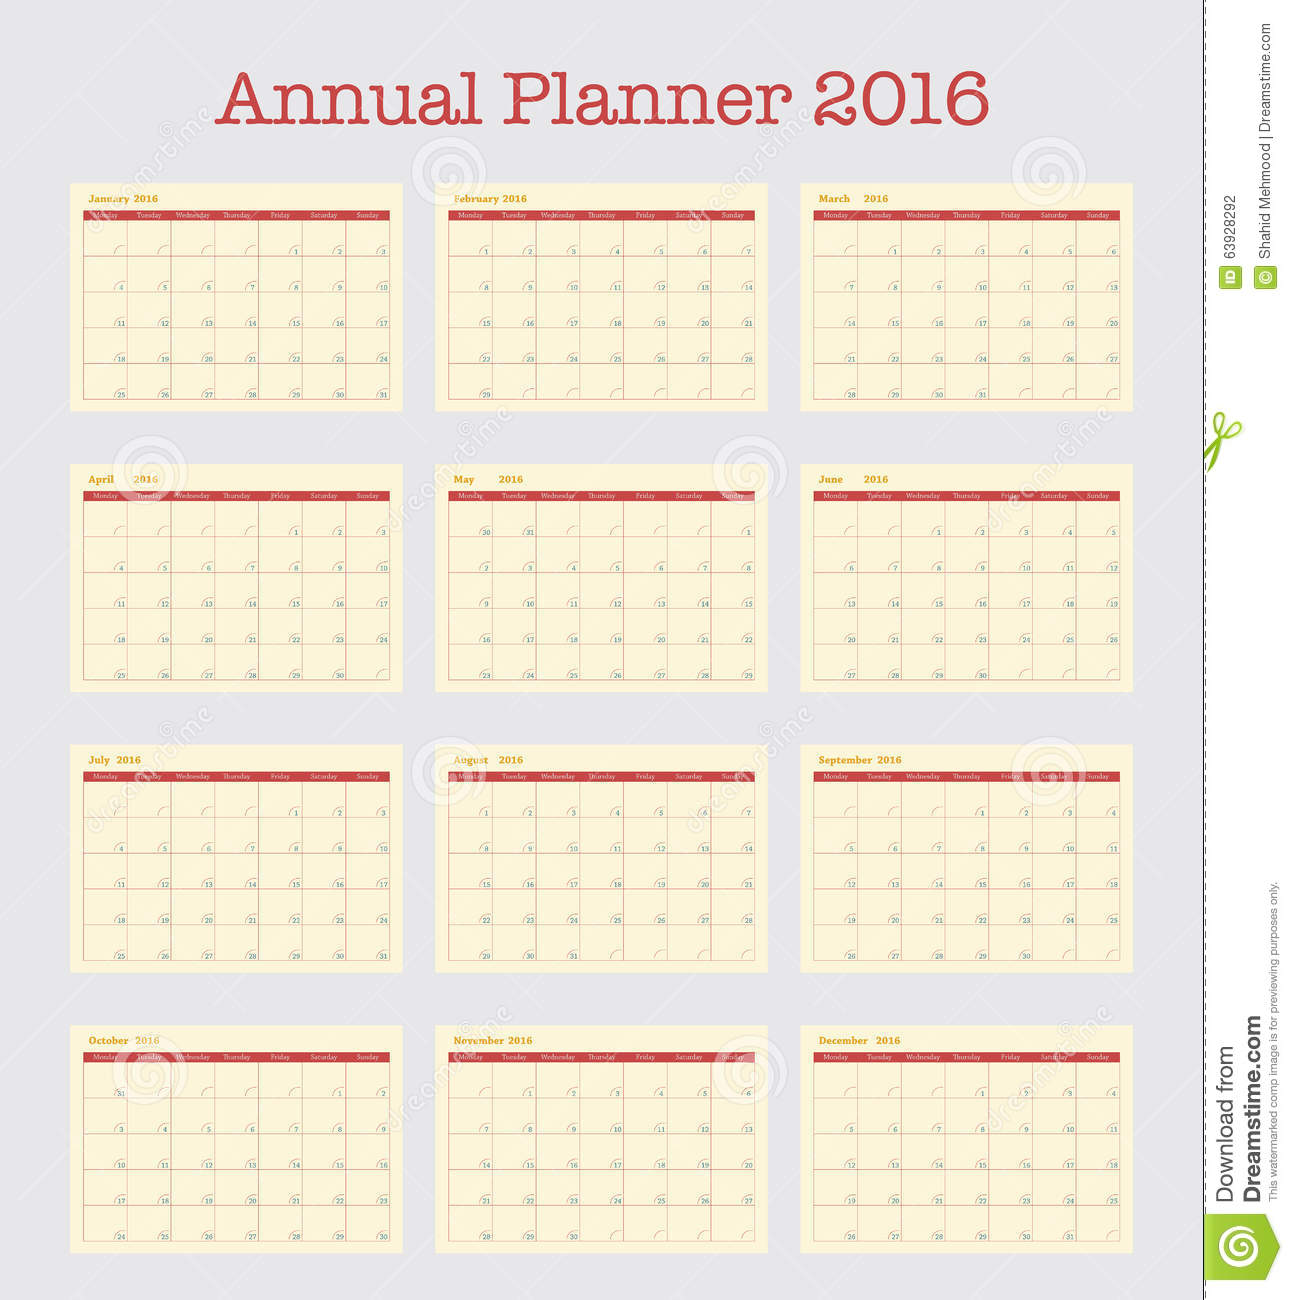 Calendar Poster Template : Poster calendar for annual planner year